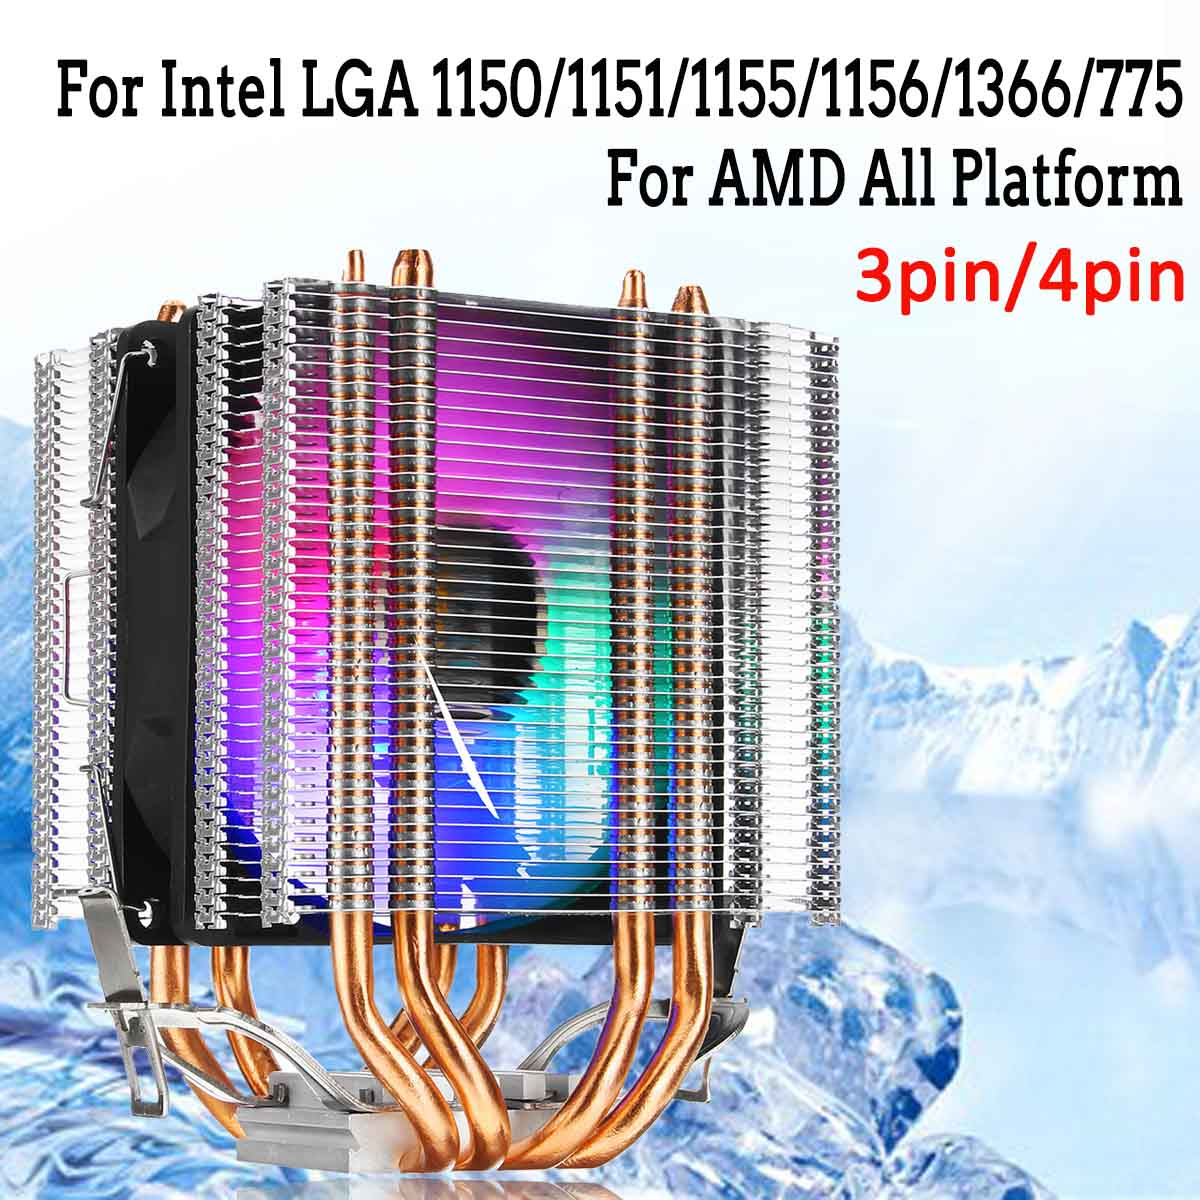 For Intel LAG 1155 1156 775 For AMD Socket AM3/AM2 RGB LED CPU Cooler Fan 4 Heatpipe Dual Tower 4pin Cooler Cooling Fan Heatsink